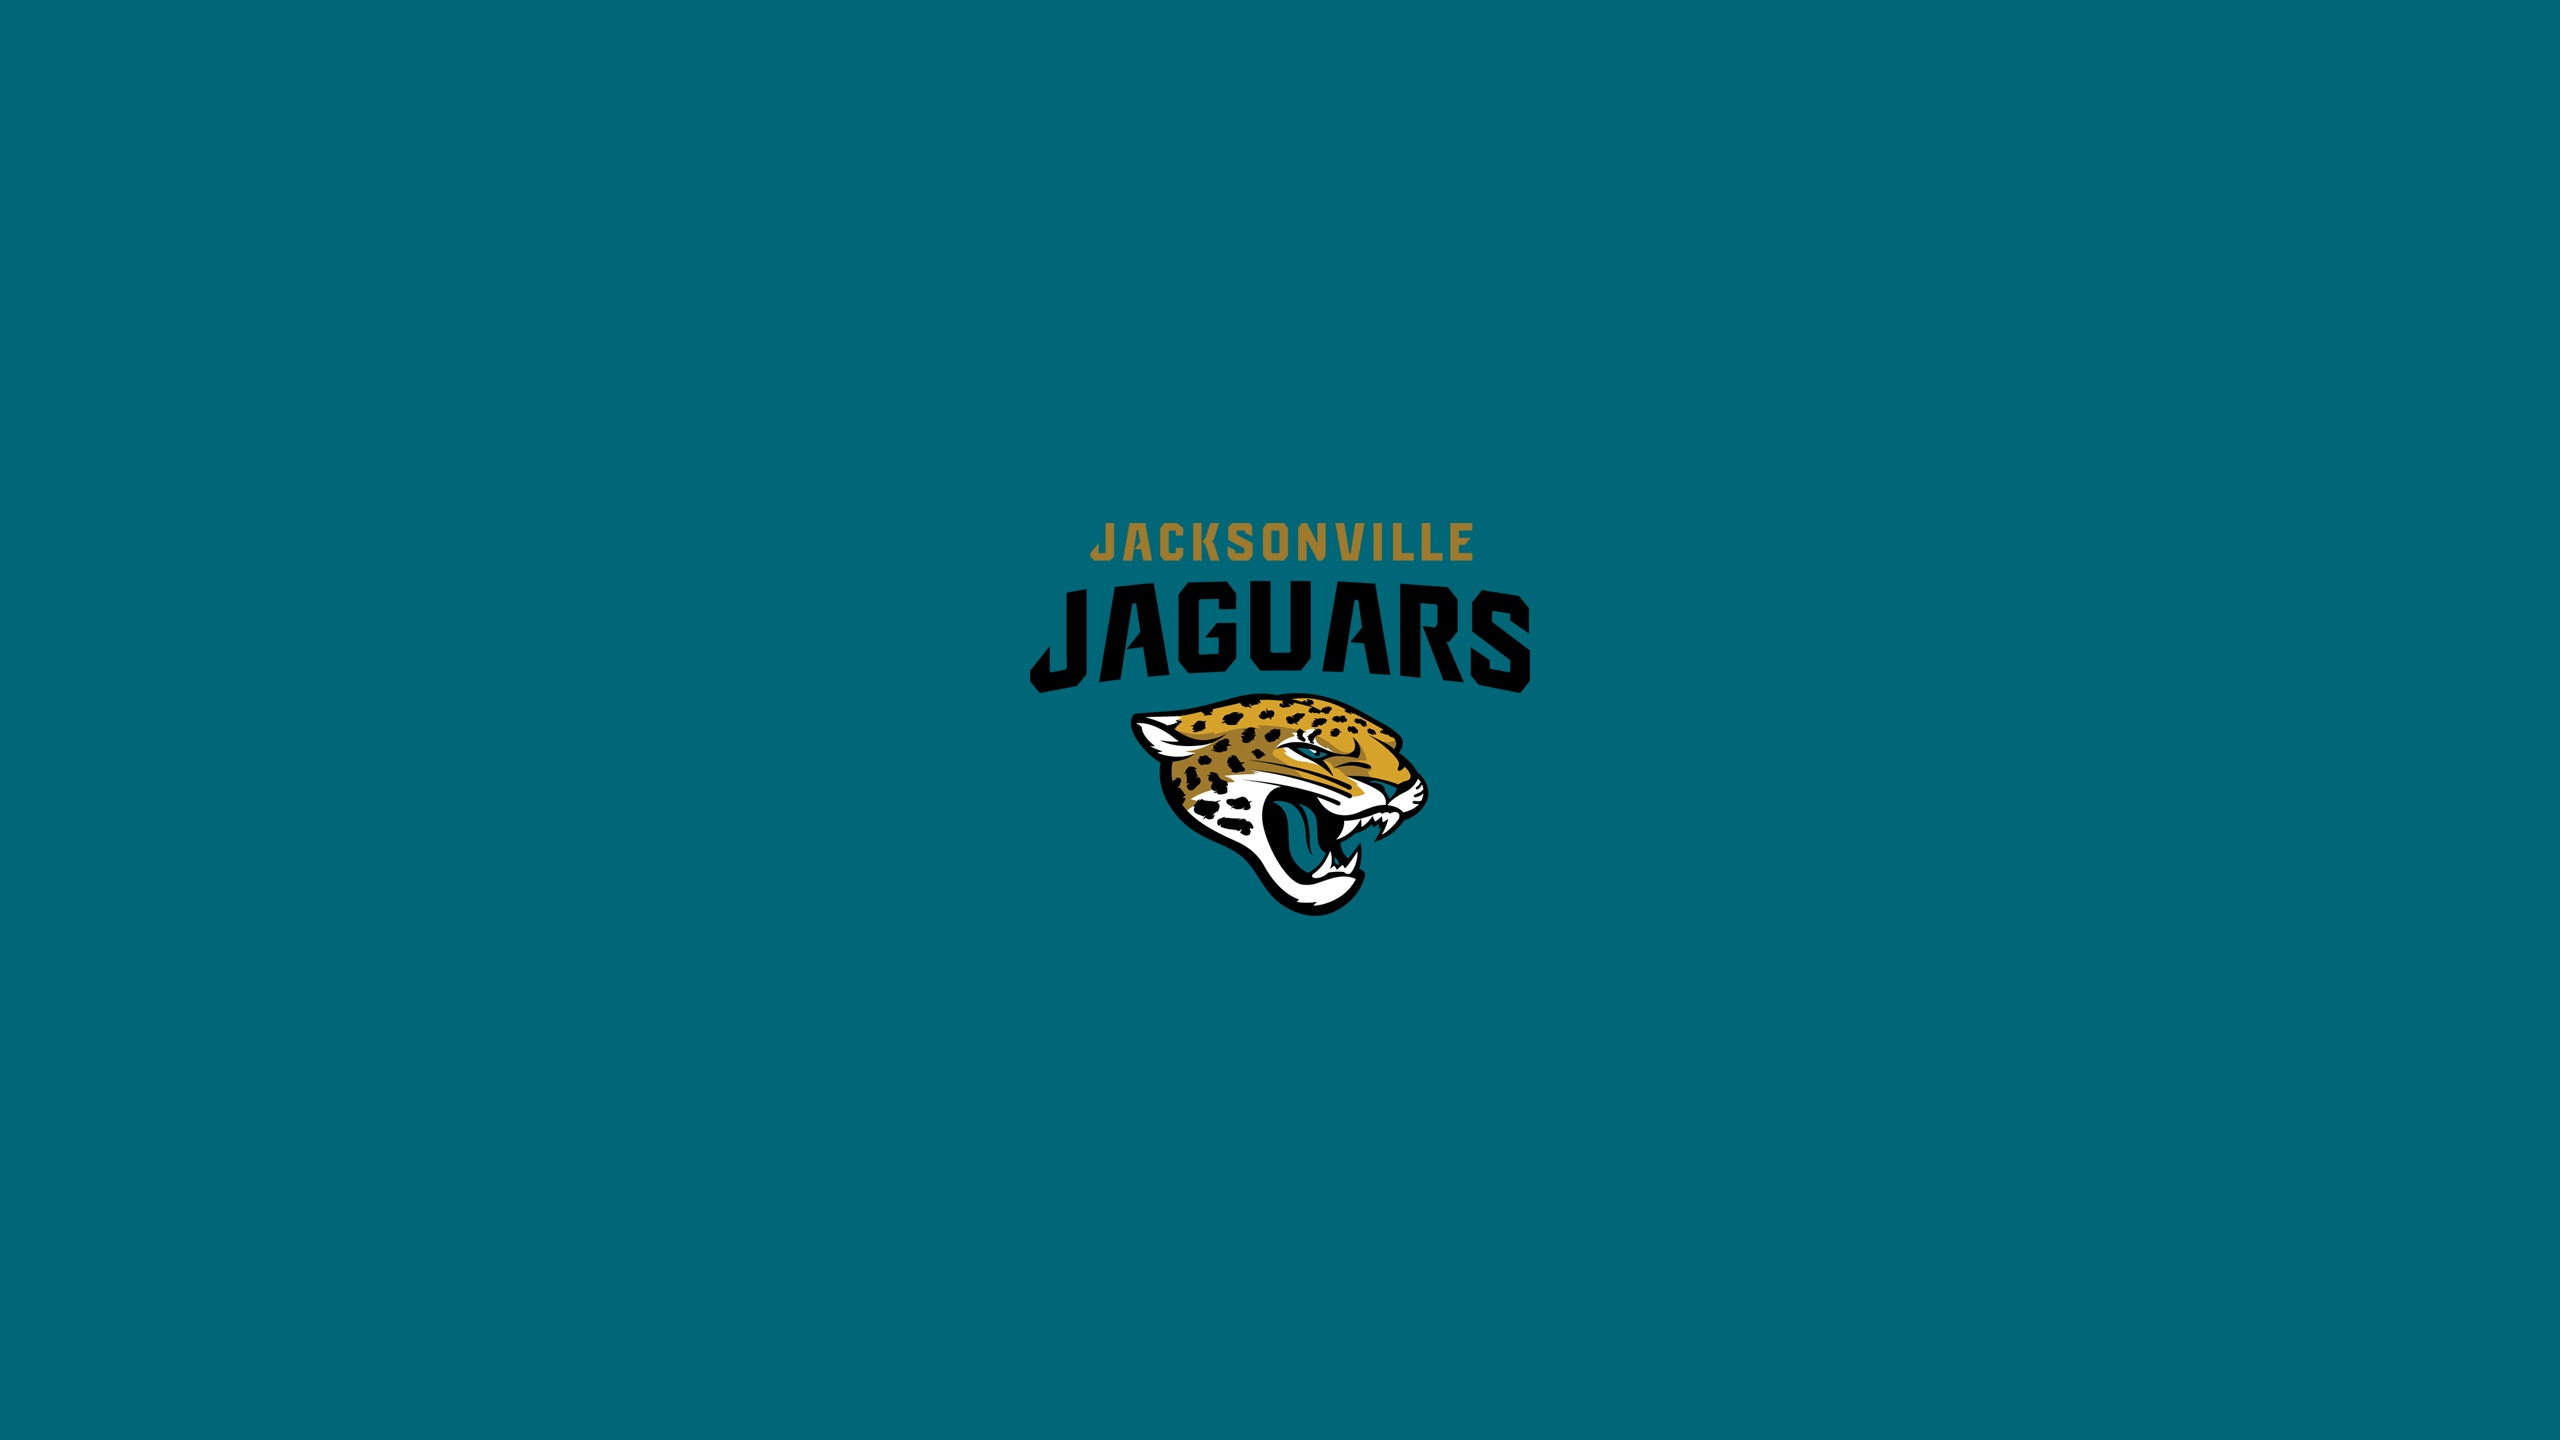 JACKSONVILLE JAGUARS nfl football b wallpaper backgroundJacksonville Jaguars Wallpaper 2013